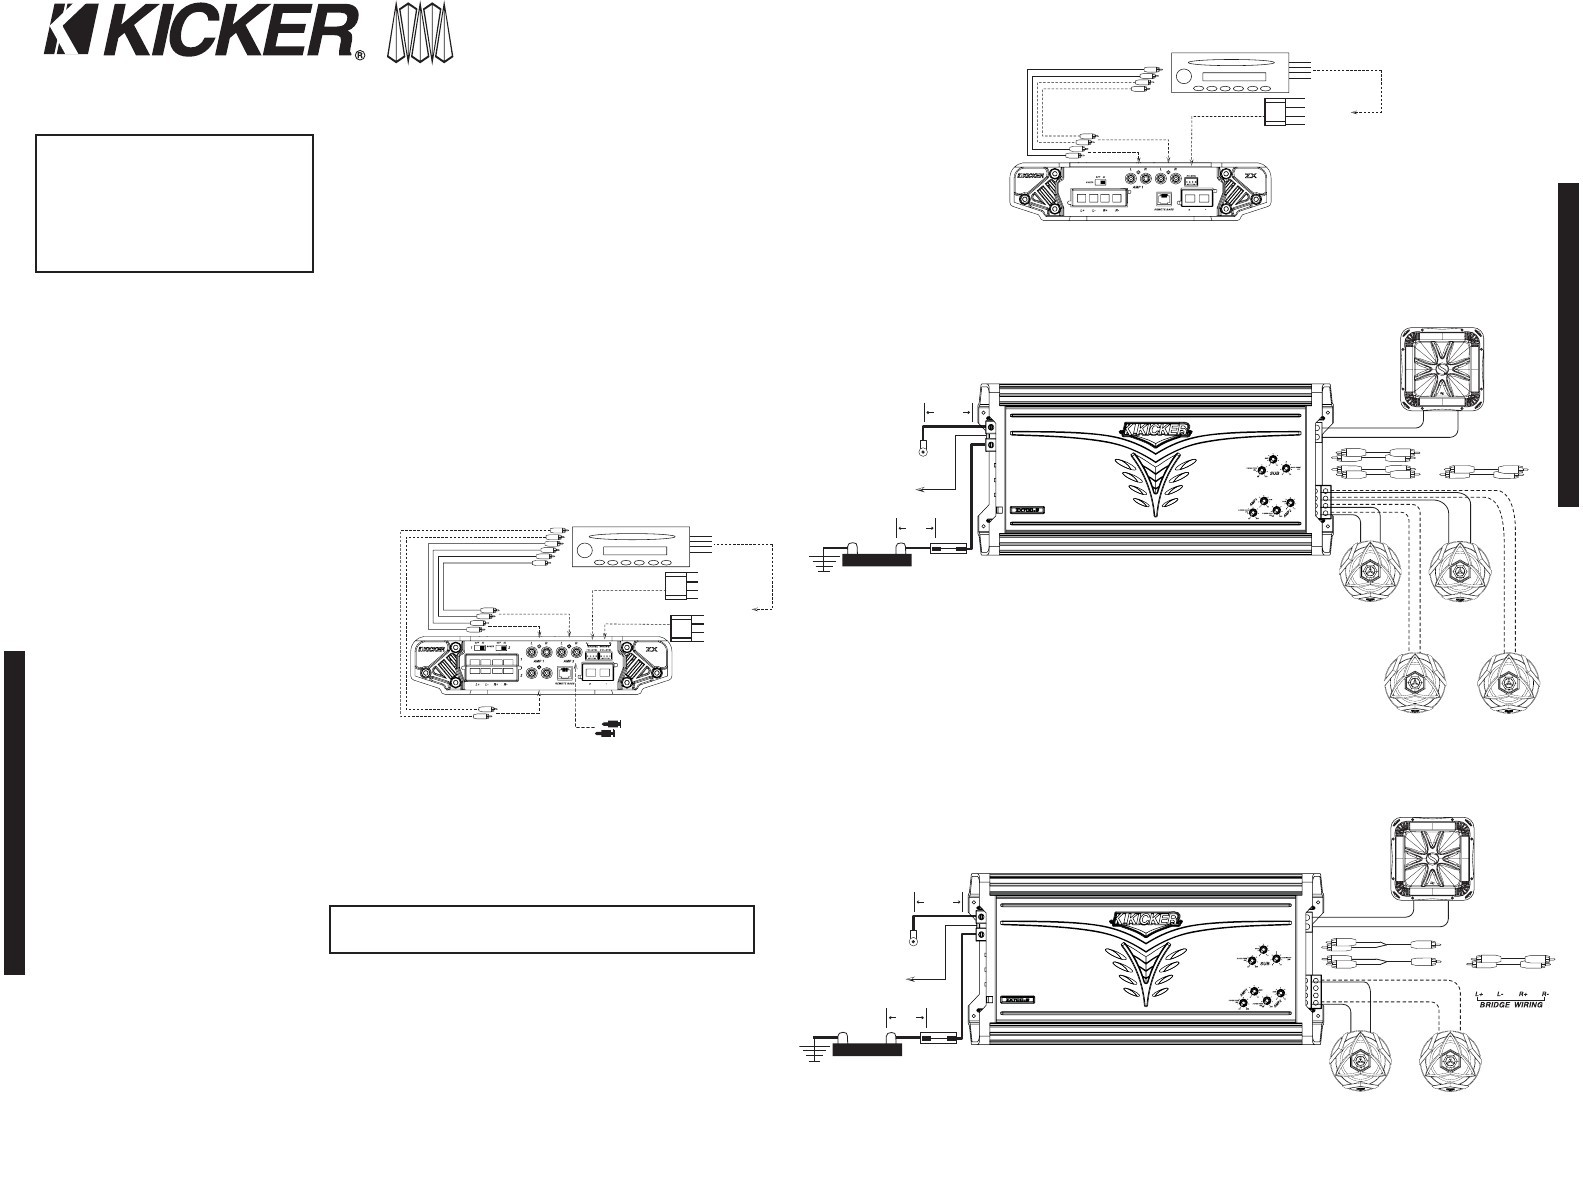 hight resolution of kicker bridge wiring the structural wiring diagram